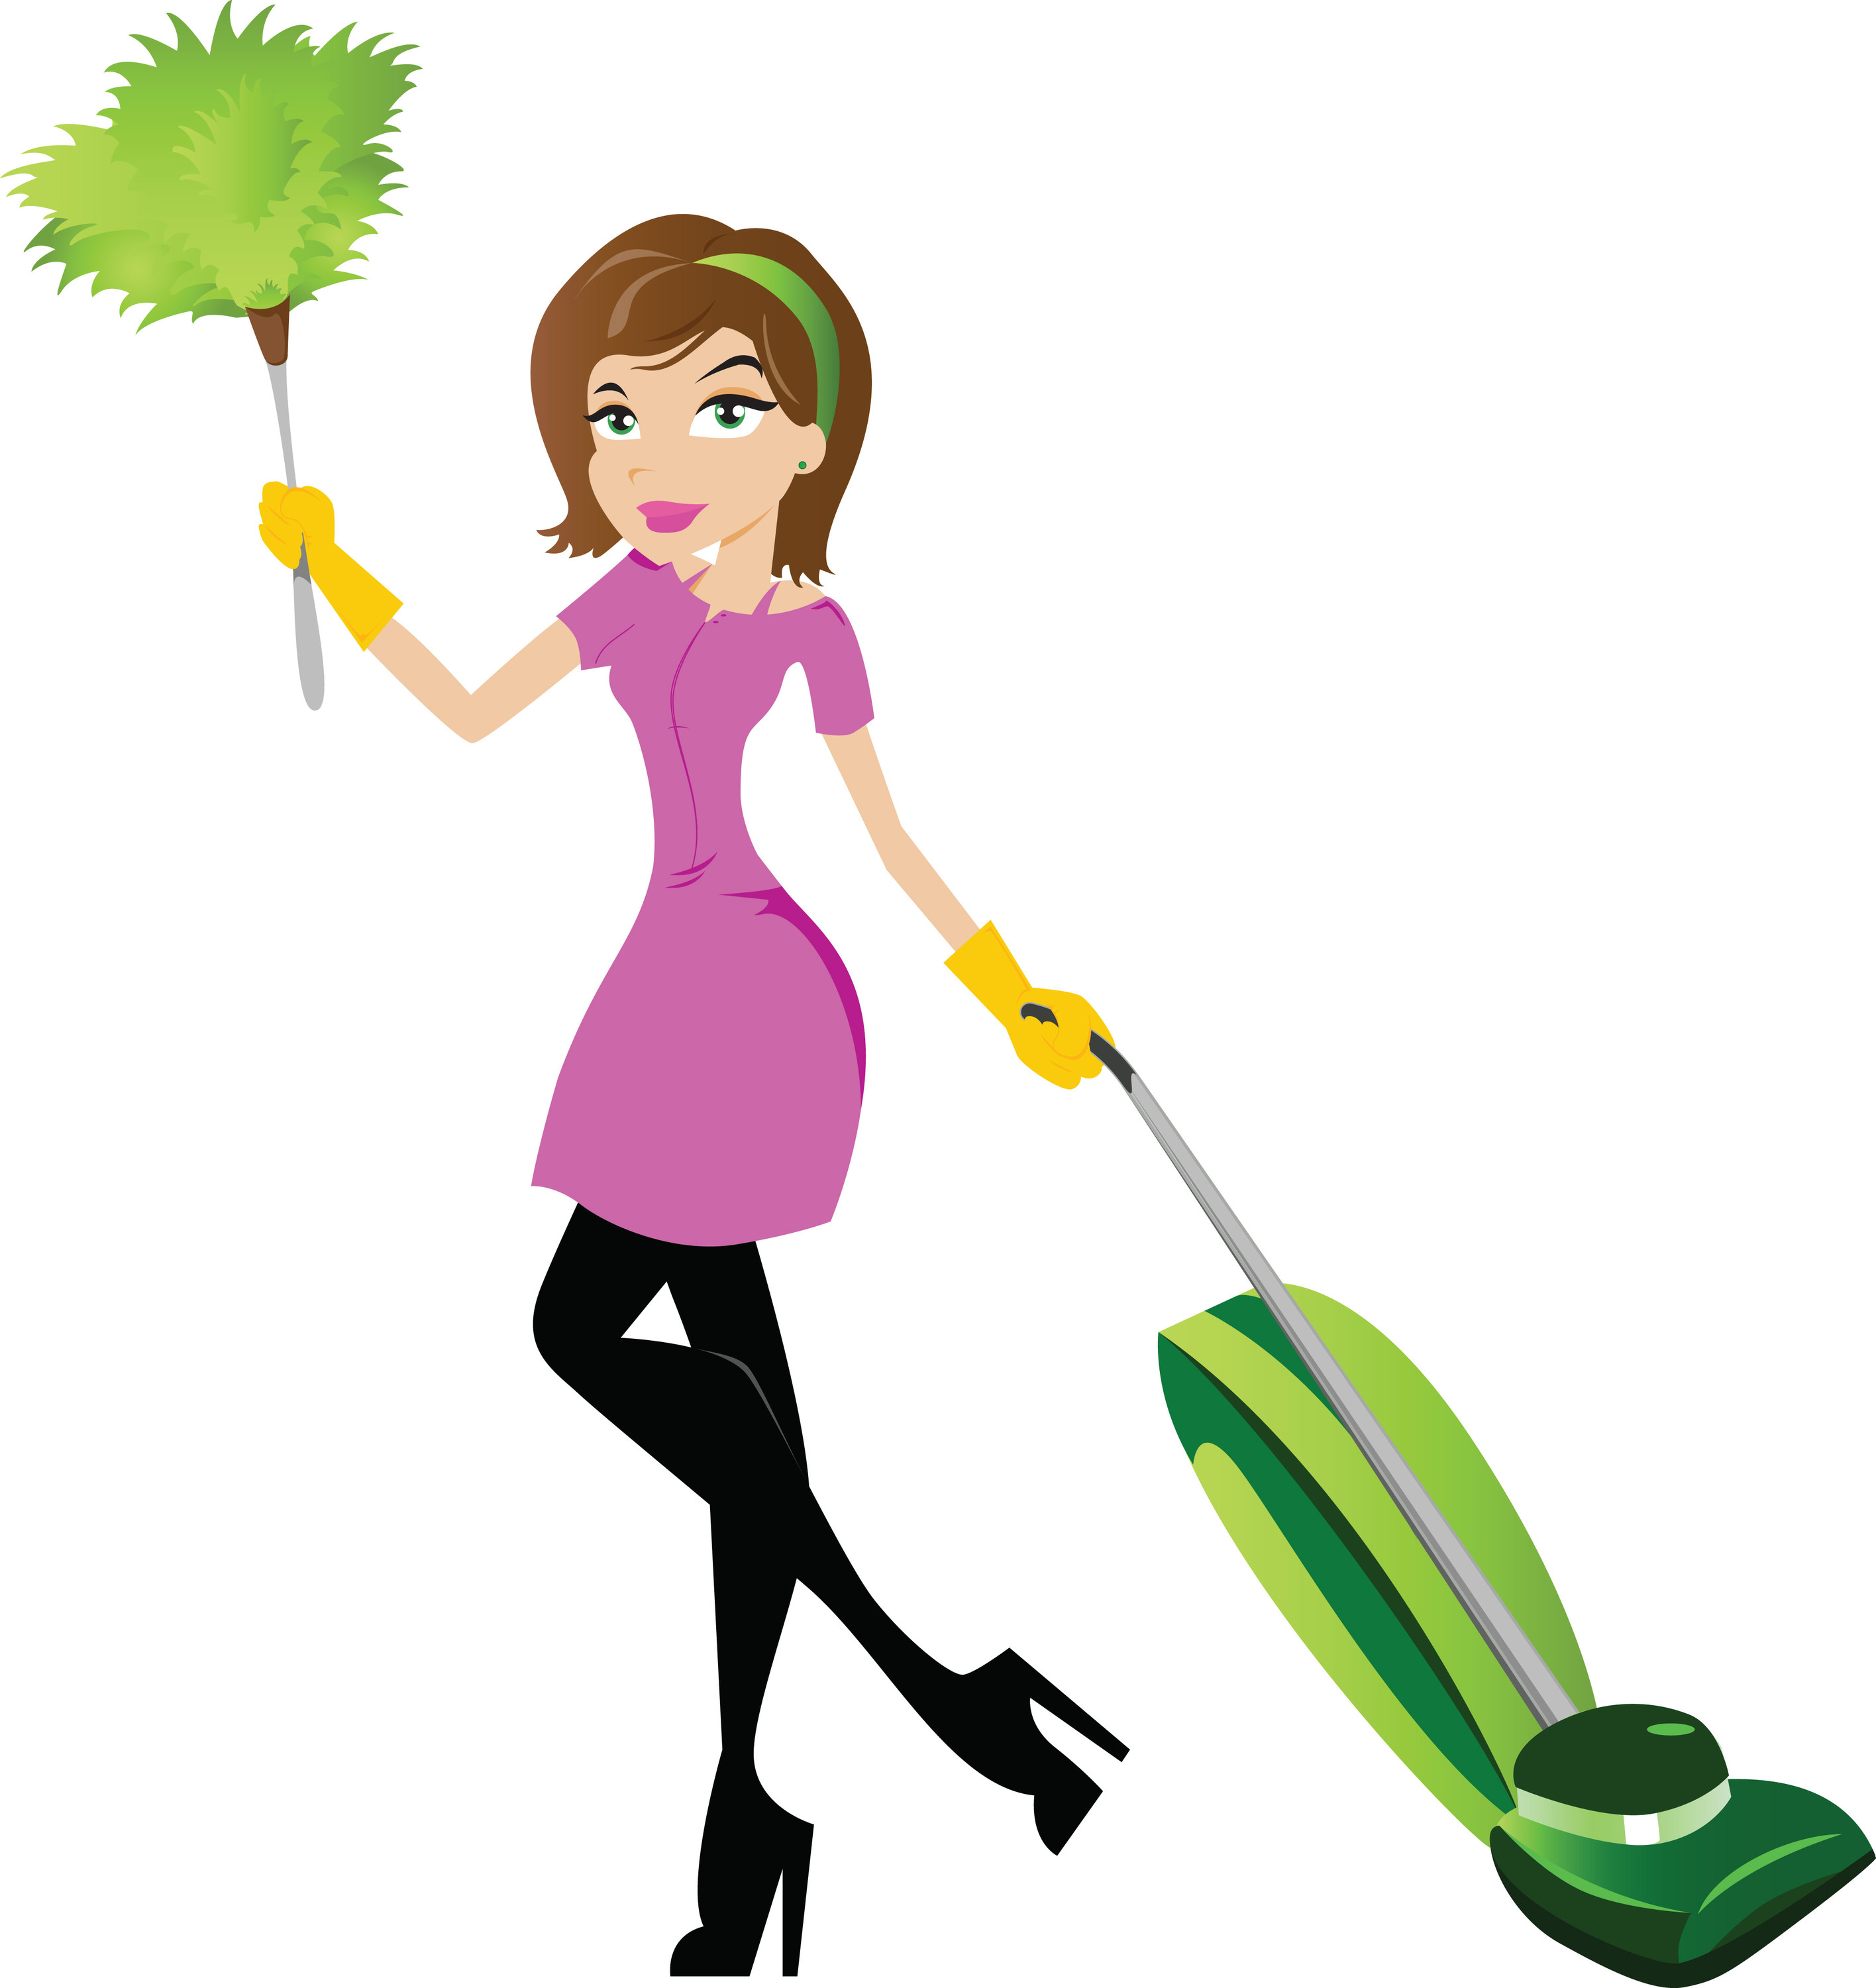 Mother Cleaning Clipart Clipart Panda Fr-Mother Cleaning Clipart Clipart Panda Free Clipart Images-18